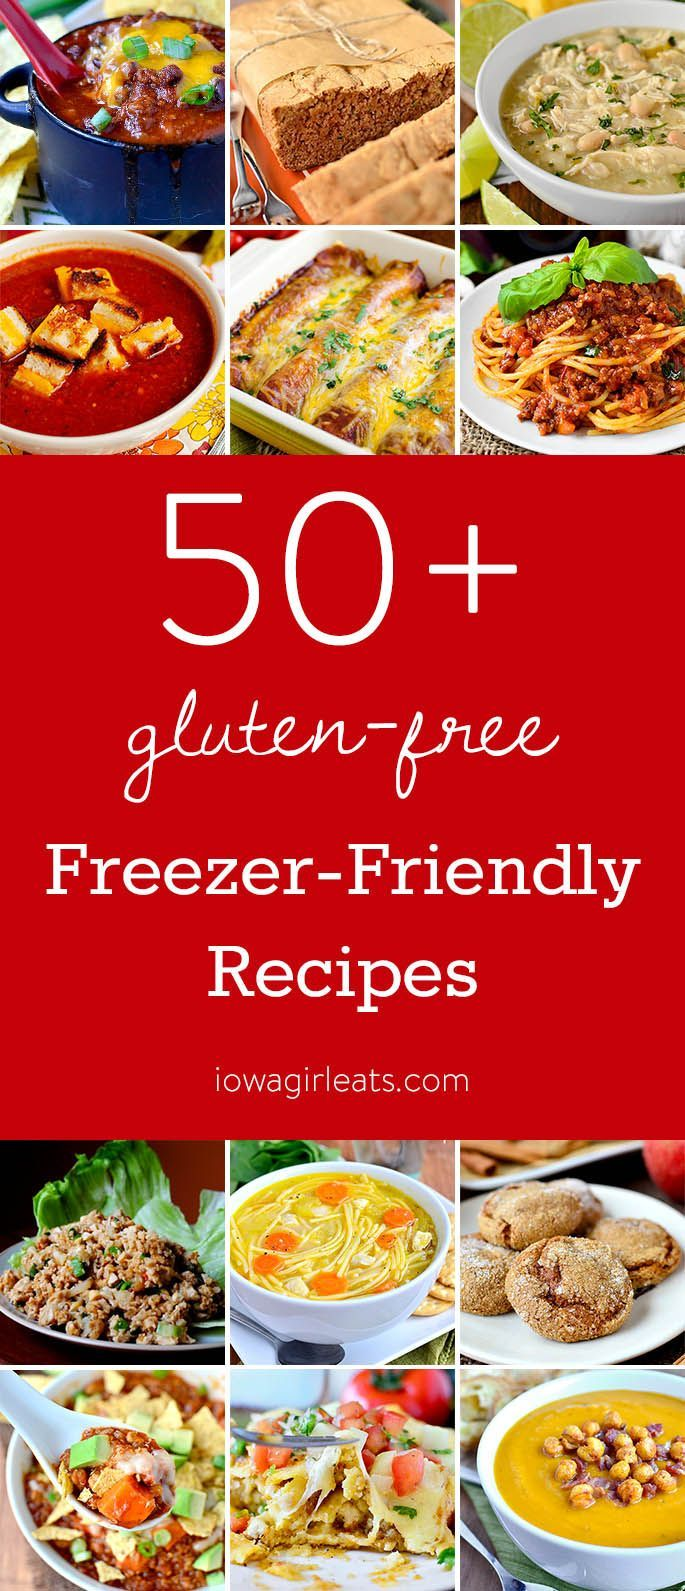 Freezer-Friendly Recipes Freezer cooking is a wonderful way to save time and money in the kitchen! Here are 50+ gluten-free freezer-friendly recipes, plus tips on how to freeze foods, and which foods do and don't freeze well.  | Freezer cooking is a wonderful way to save time and money in the kitchen! Here are 50+ gluten-free freezer-friendly recip...